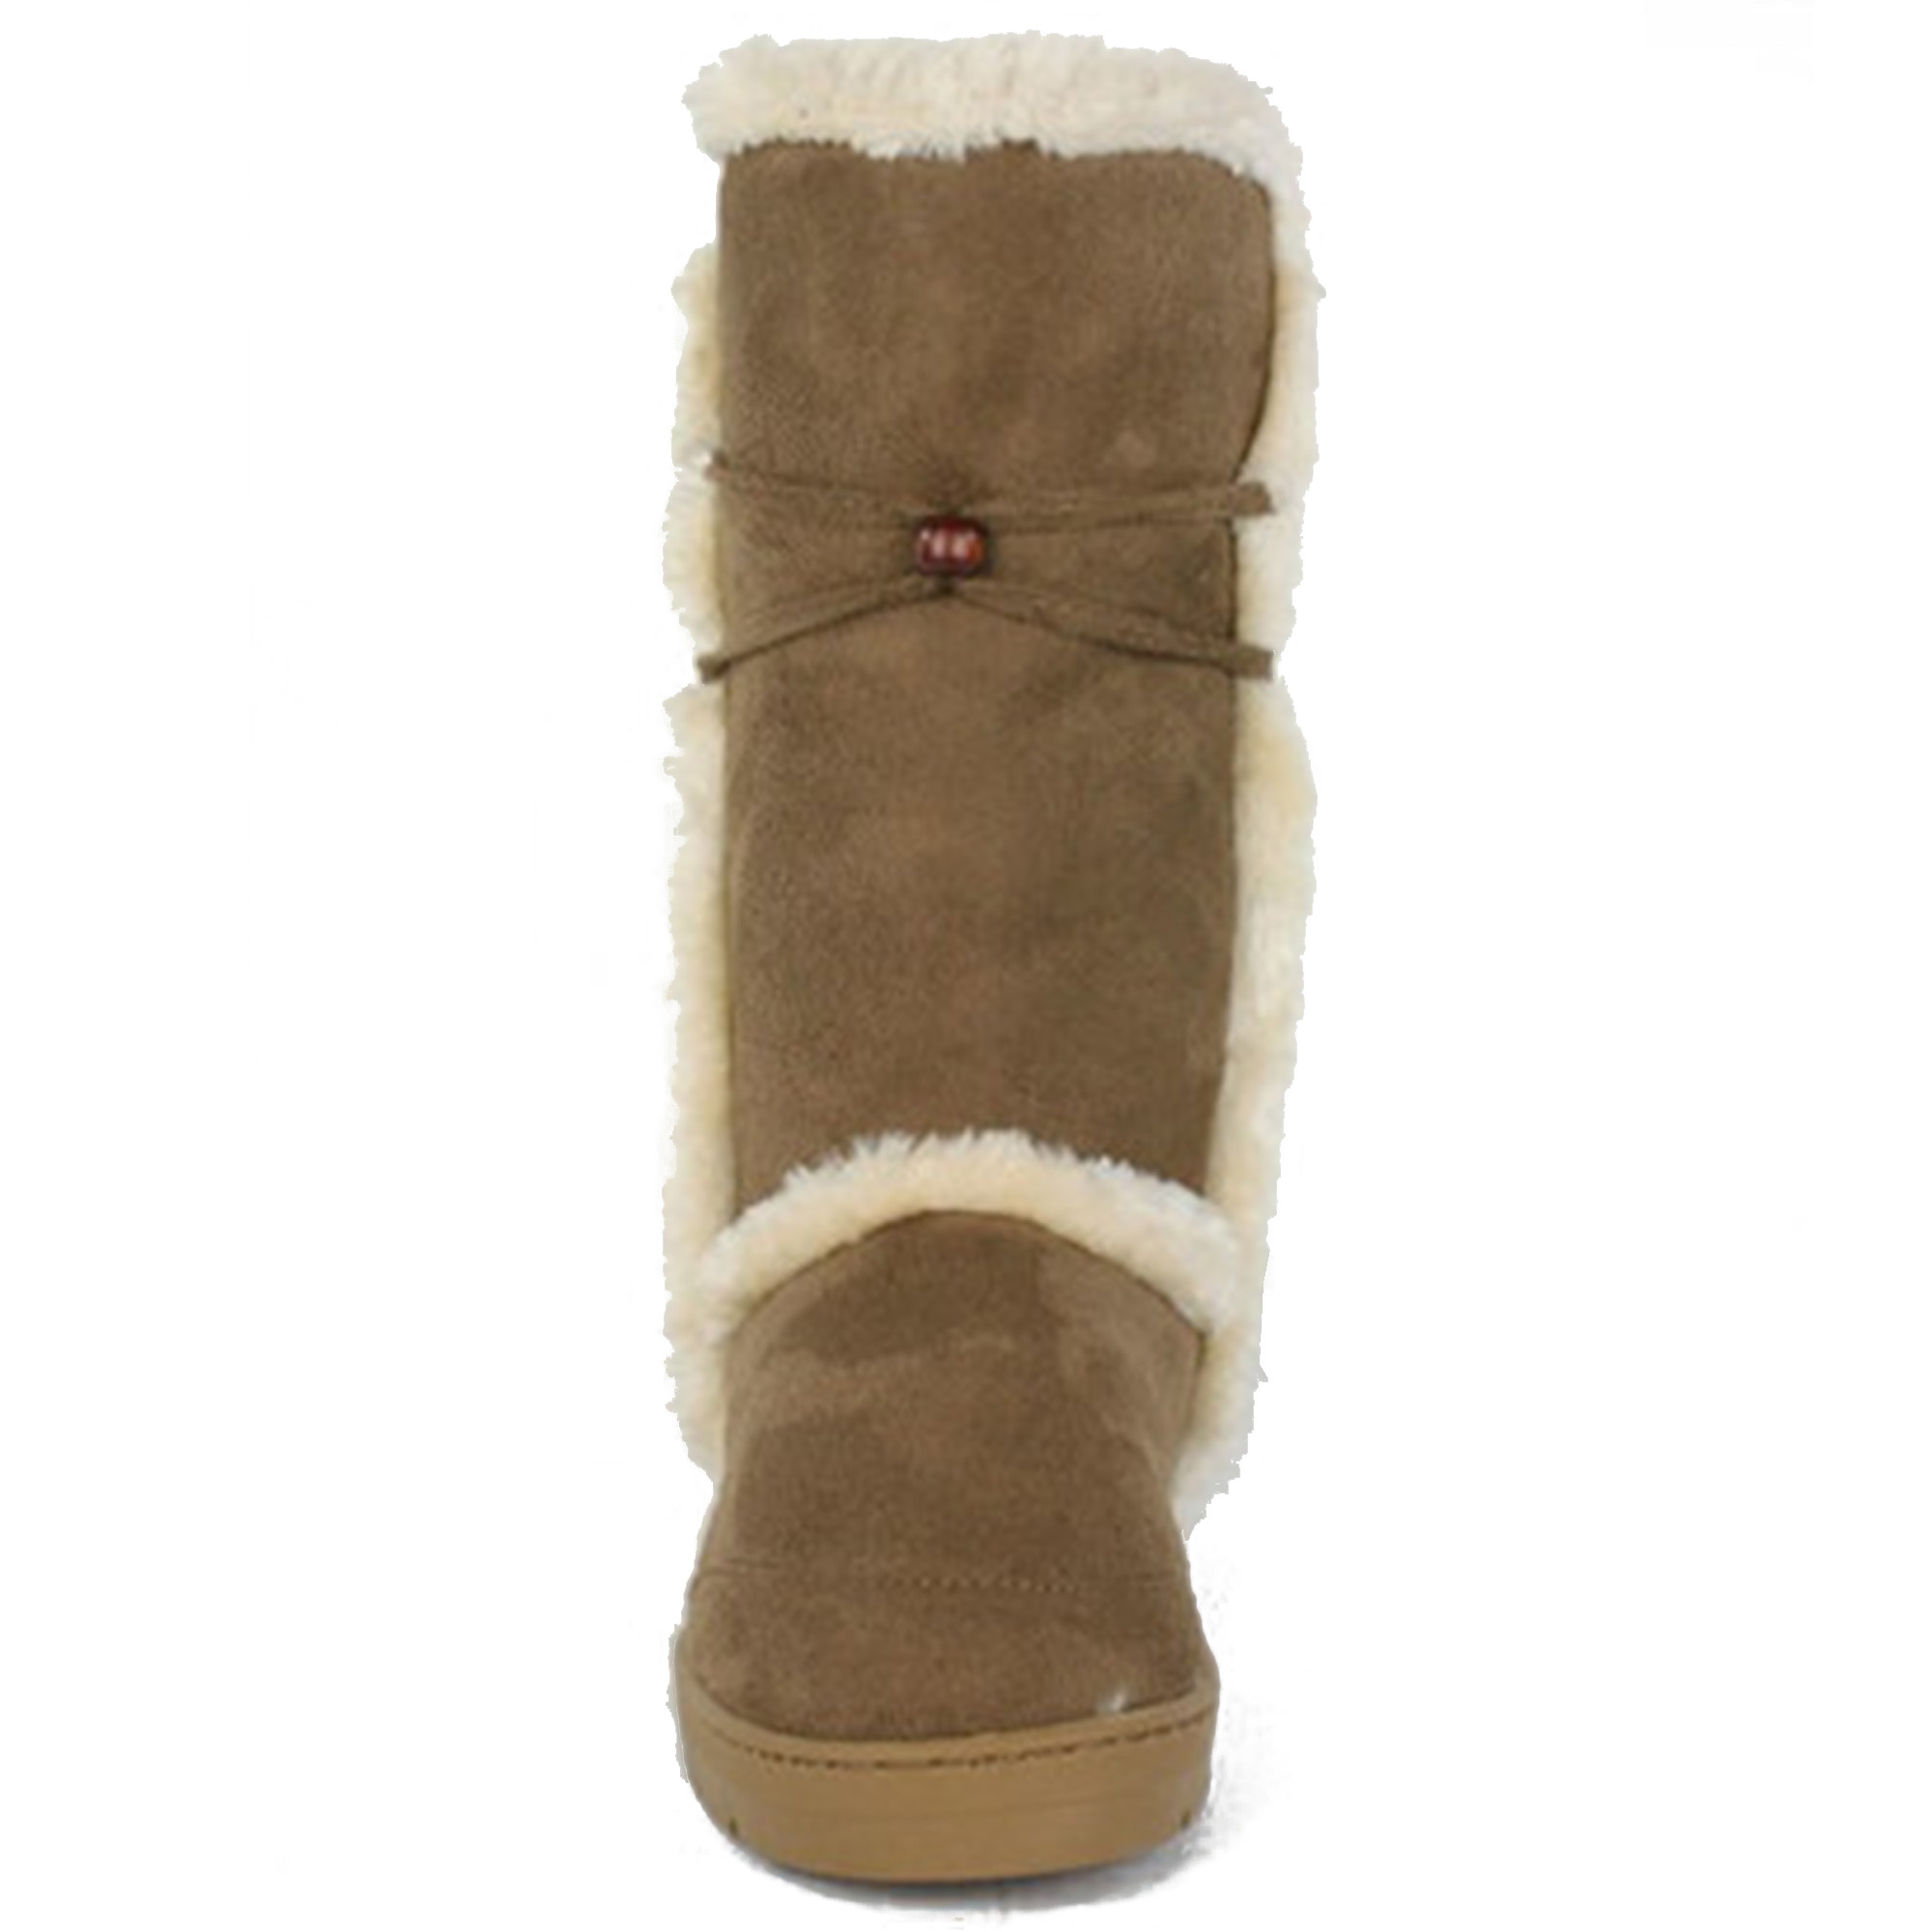 5d0e4f6591a Tall Uggs With Rubber Sole - cheap watches mgc-gas.com